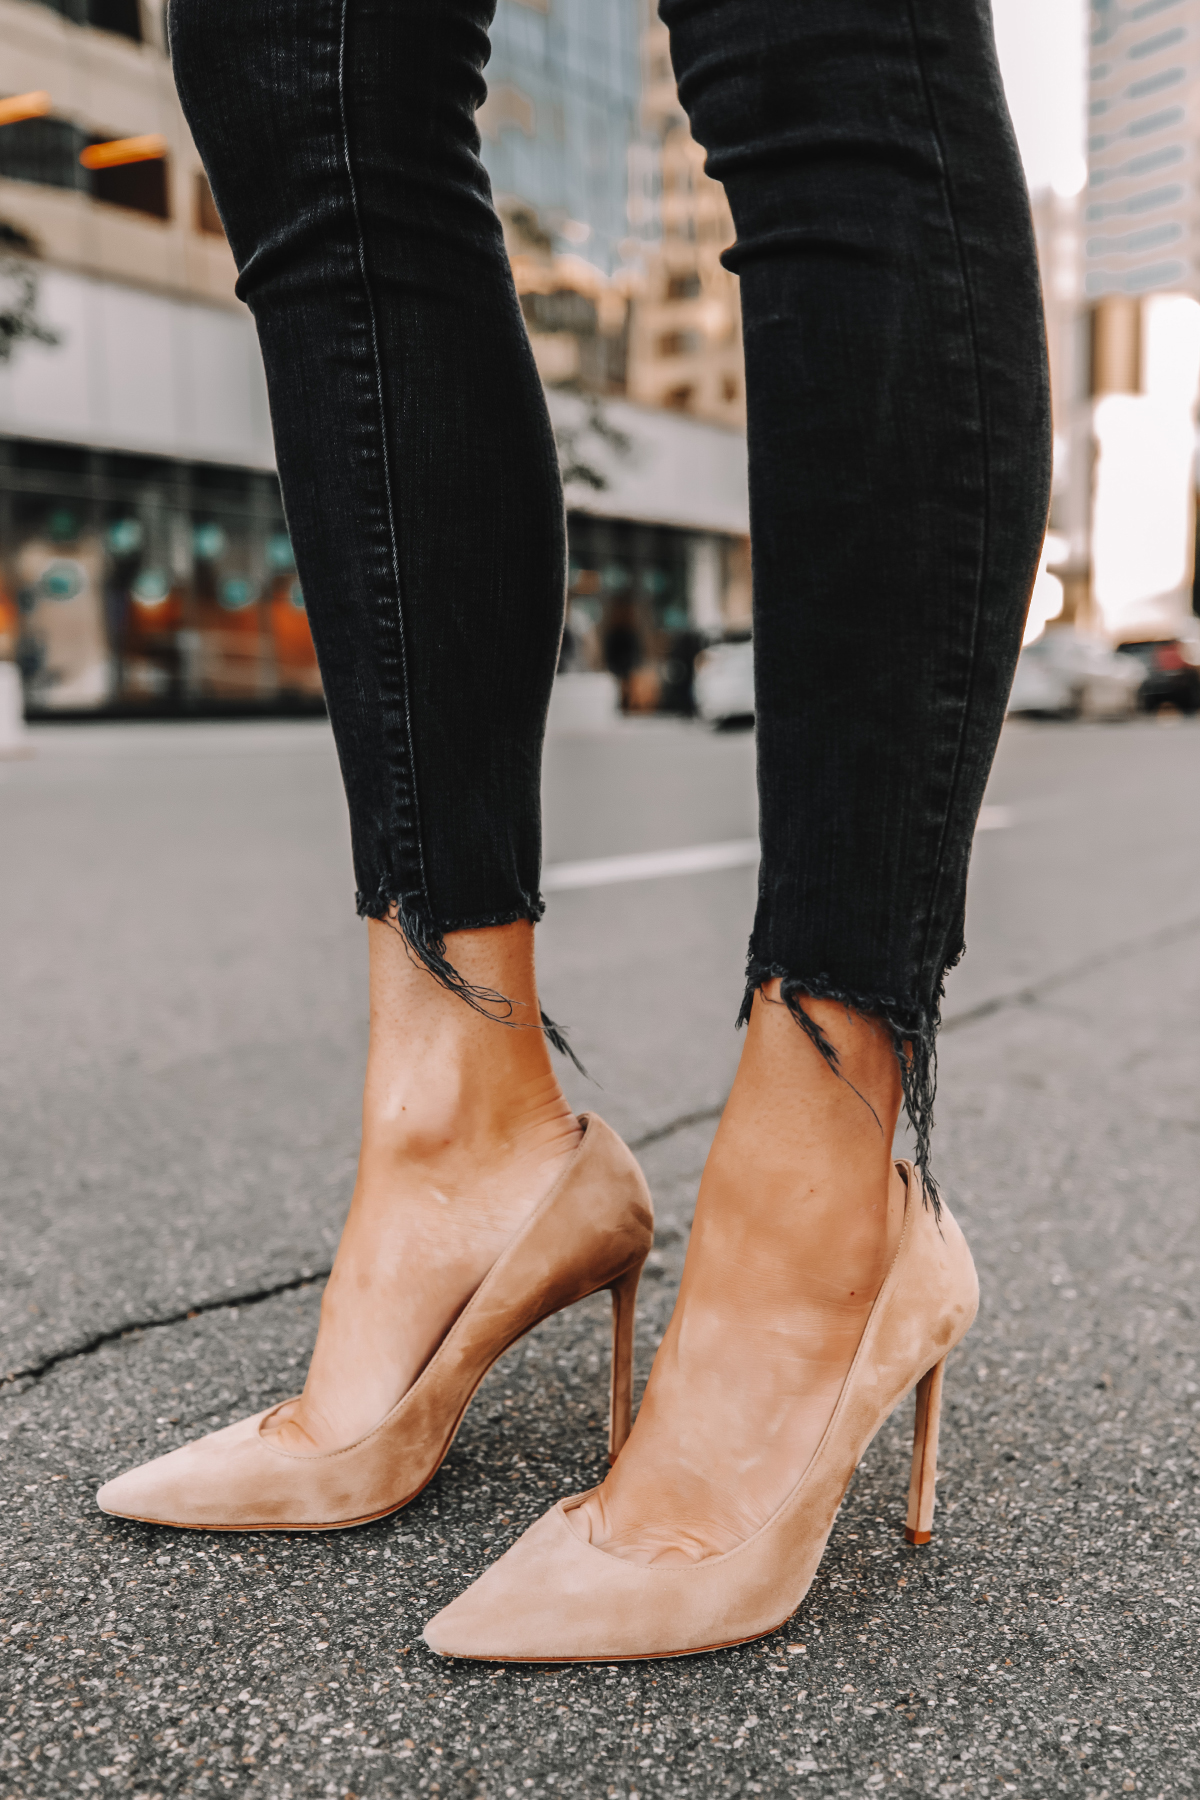 Fashion Jackson Wearing Black Frayed Skinny Jeans Nude Suede Pumps